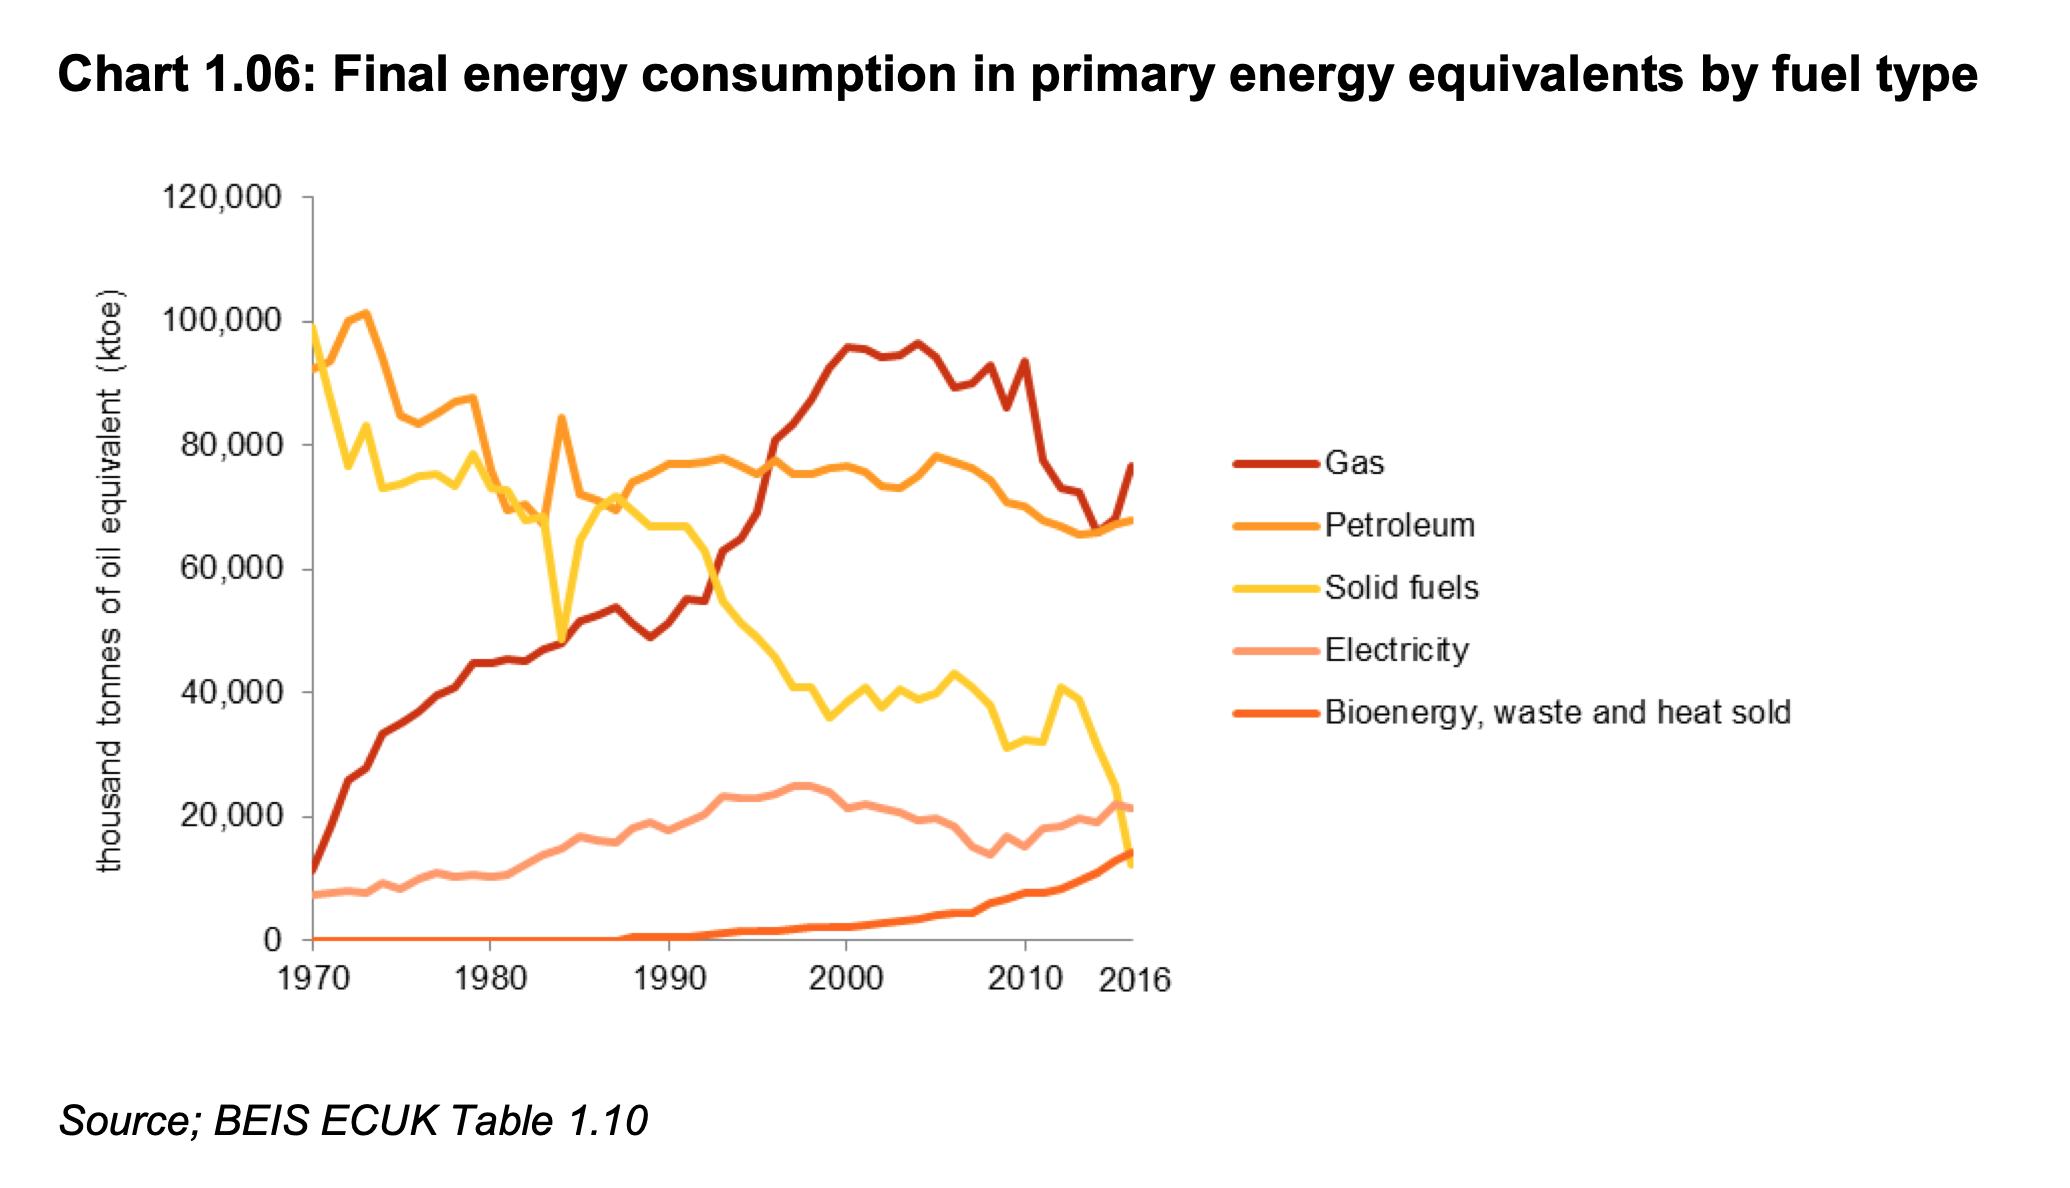 BEIS 2016 energy equivalents